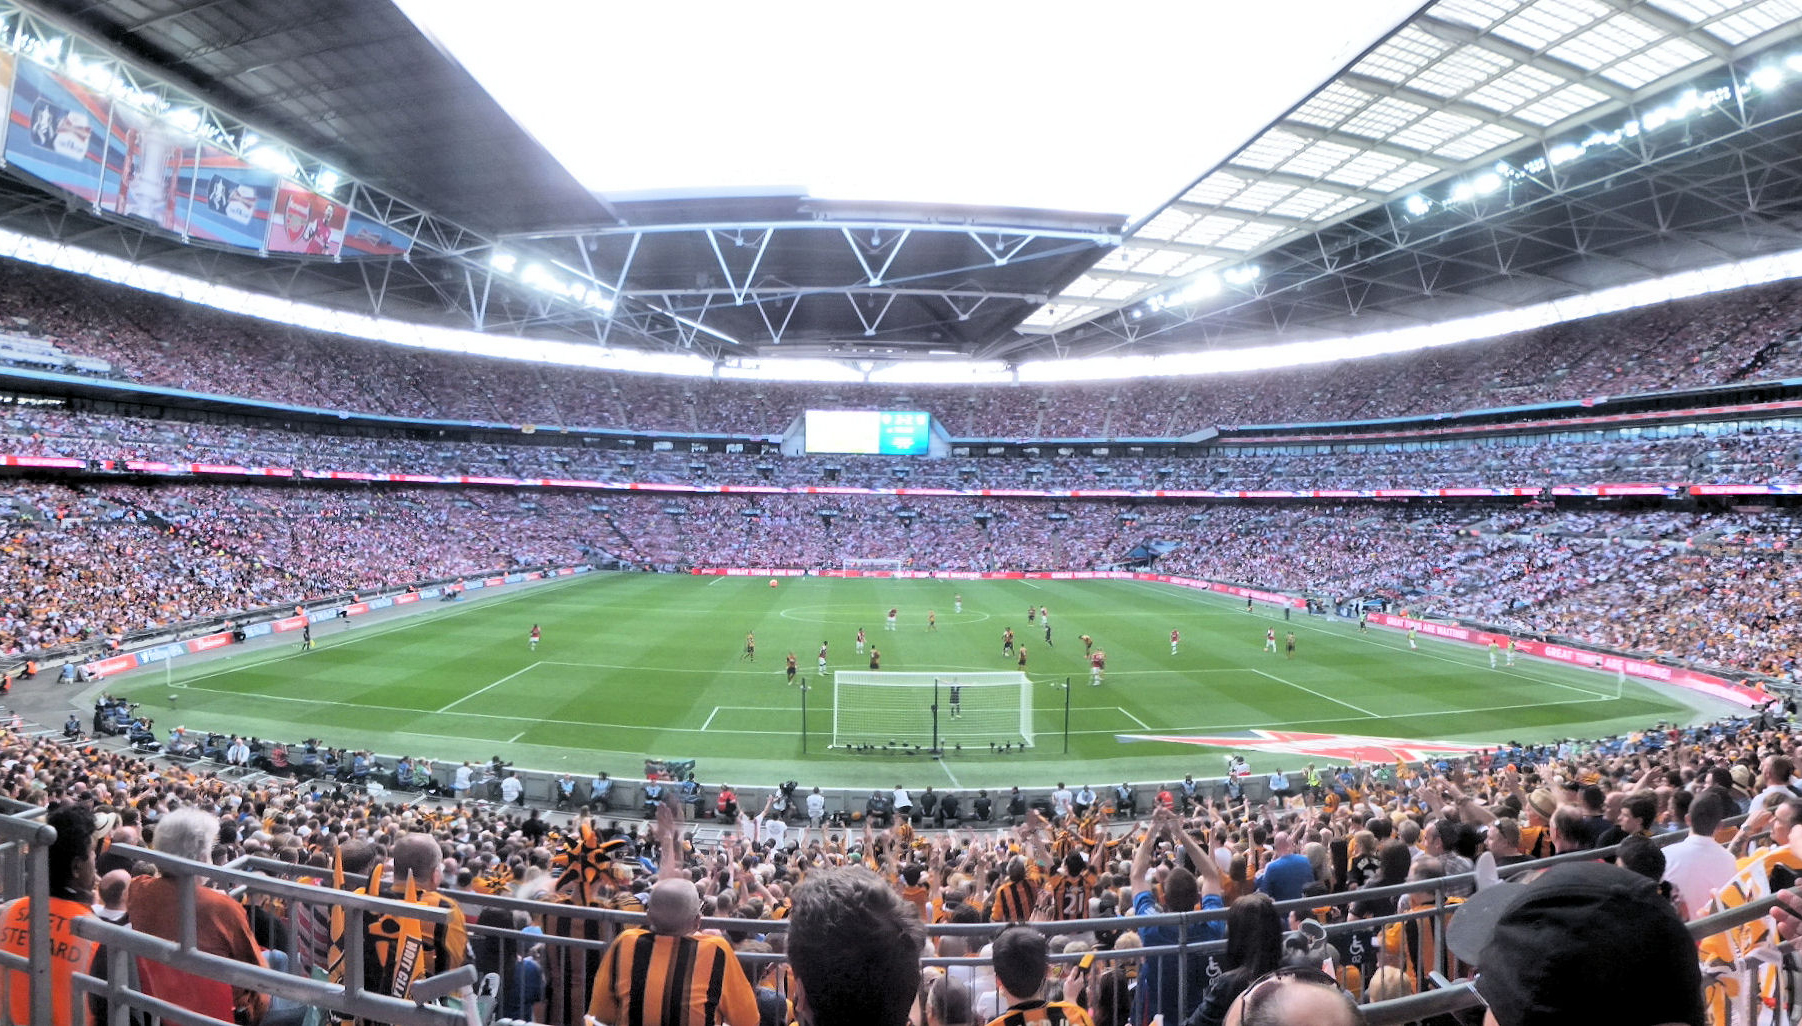 A view of the 2014 FA Cup Final at Wembley from behind the goal.